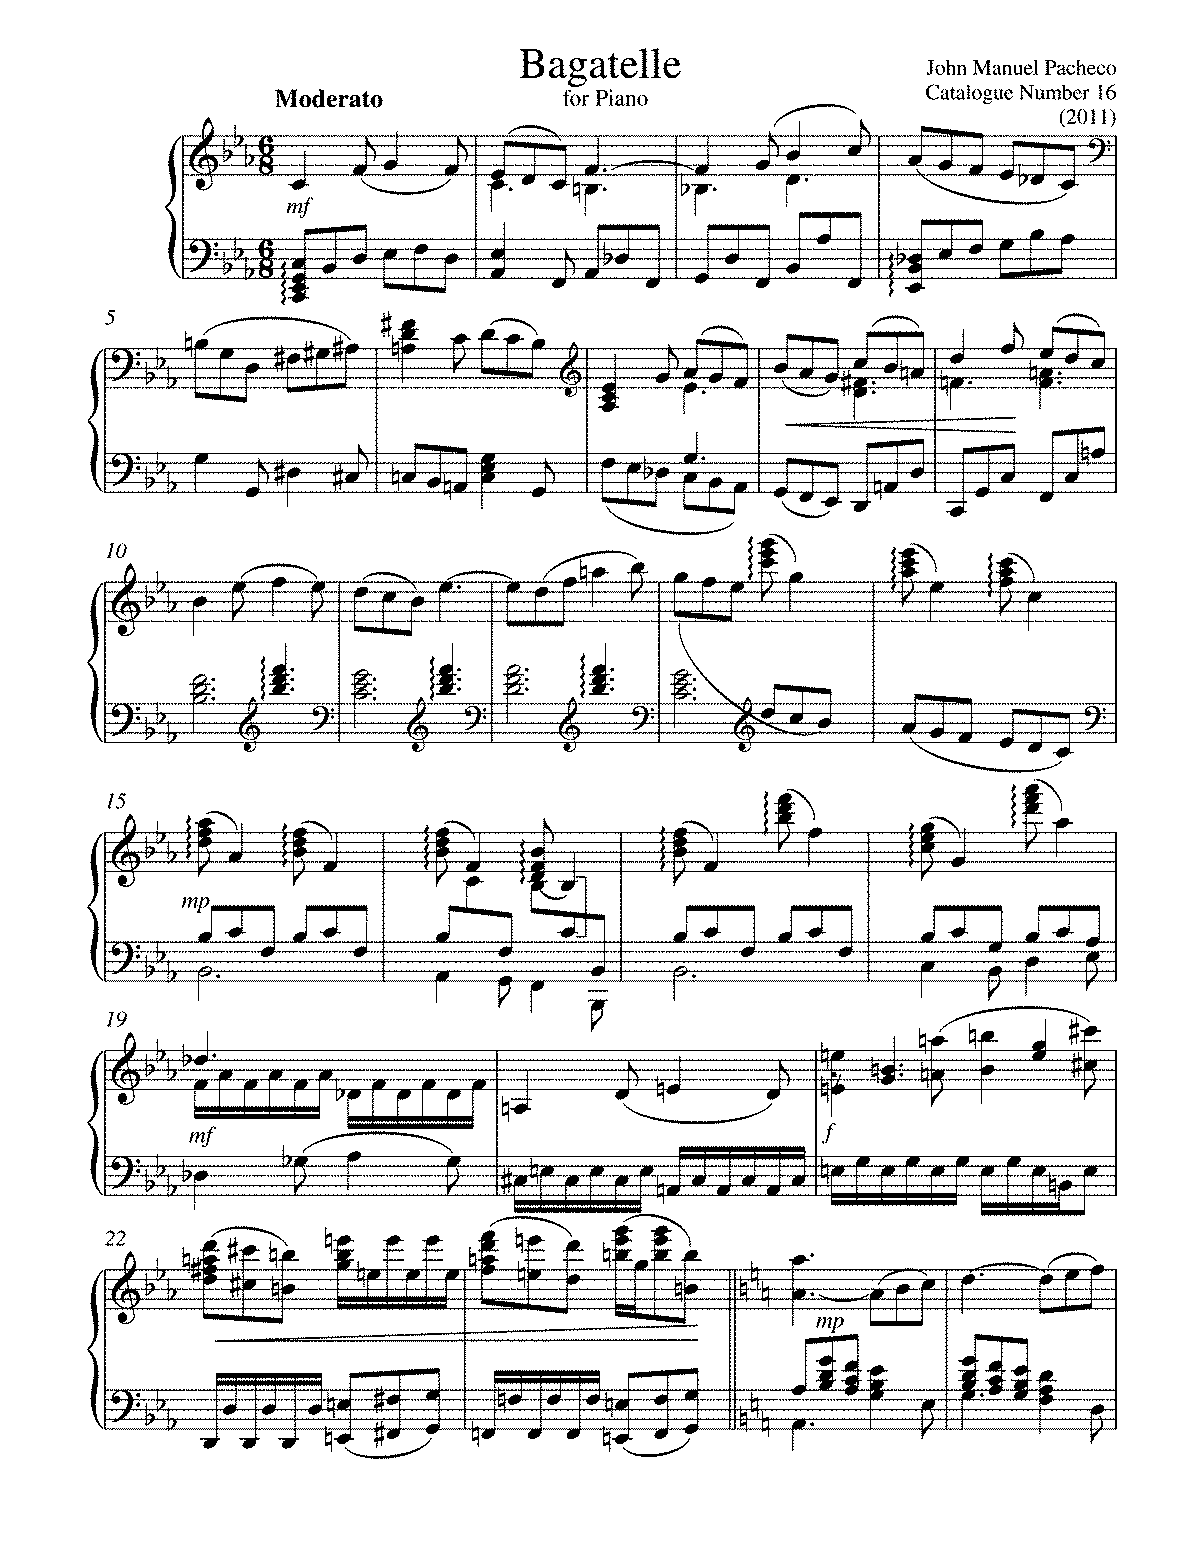 PMLP410001-Pacheco- Bagatelle for Piano.pdf